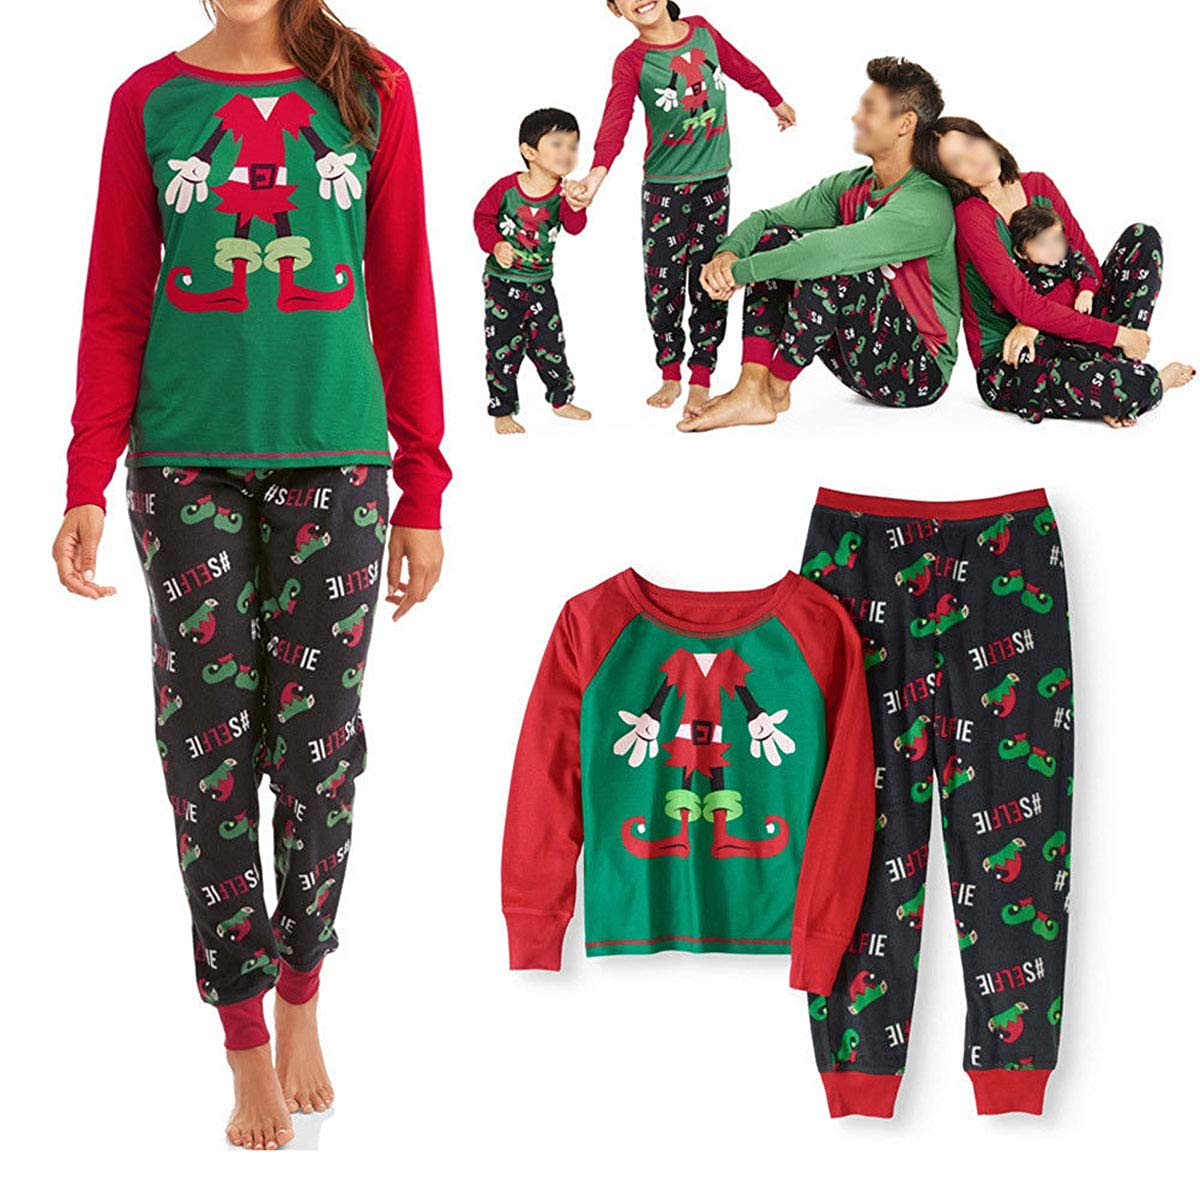 28d391b262 Cathery - Family Matching Christmas Pyjama Set Mom Dad Kids Xmas ...